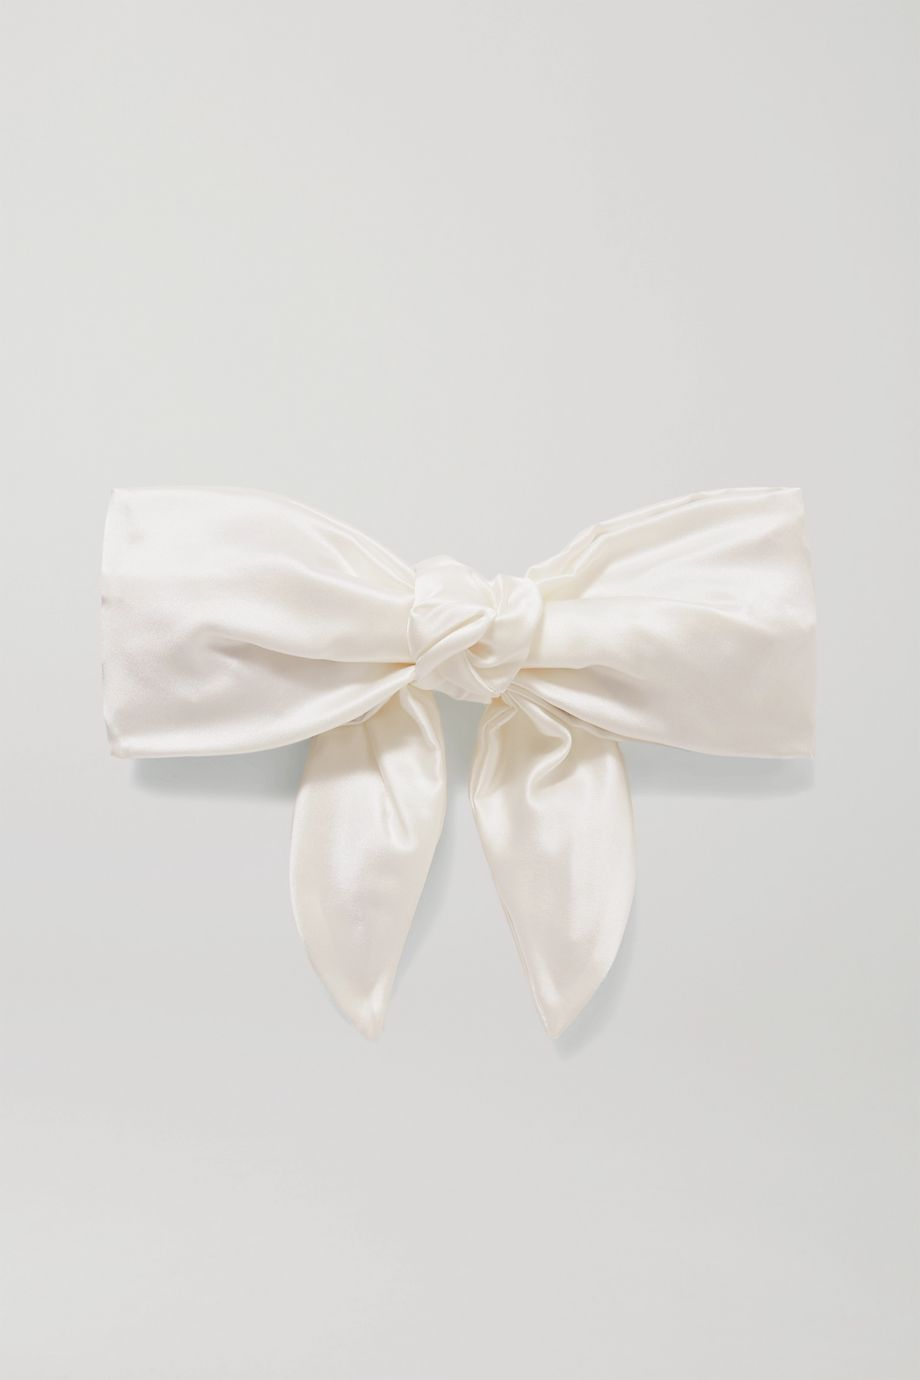 Jennifer Behr Naples silk-charmeuse hair clip